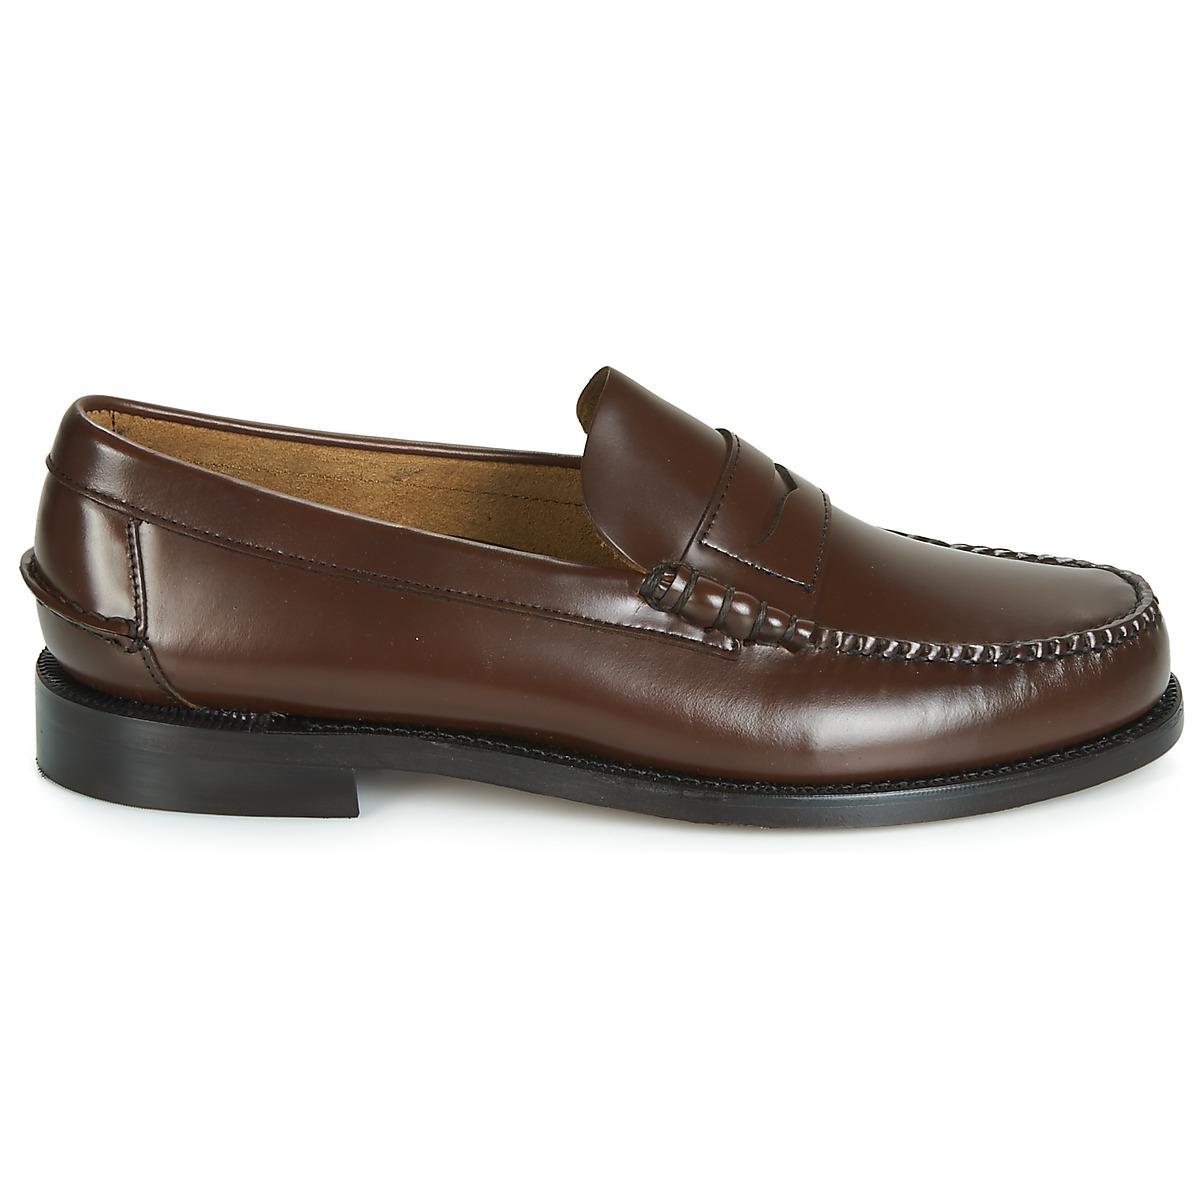 76502f56cfb ... Classic Dan Loafers   Casual Shoes for Men - Lyst. View fullscreen